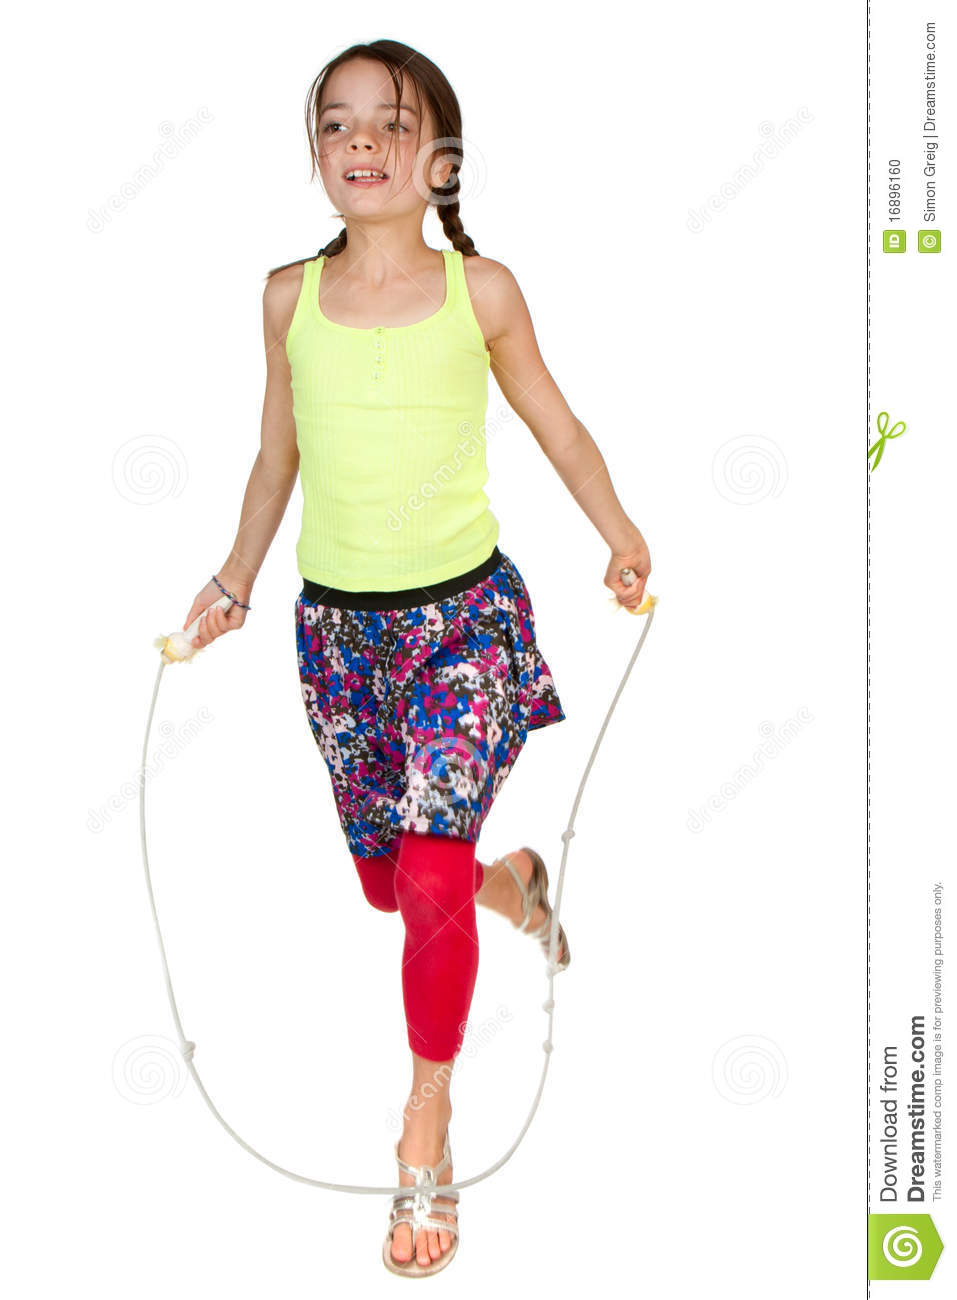 Primary Age Girl Skipping Stock Photo - Image: 16896160